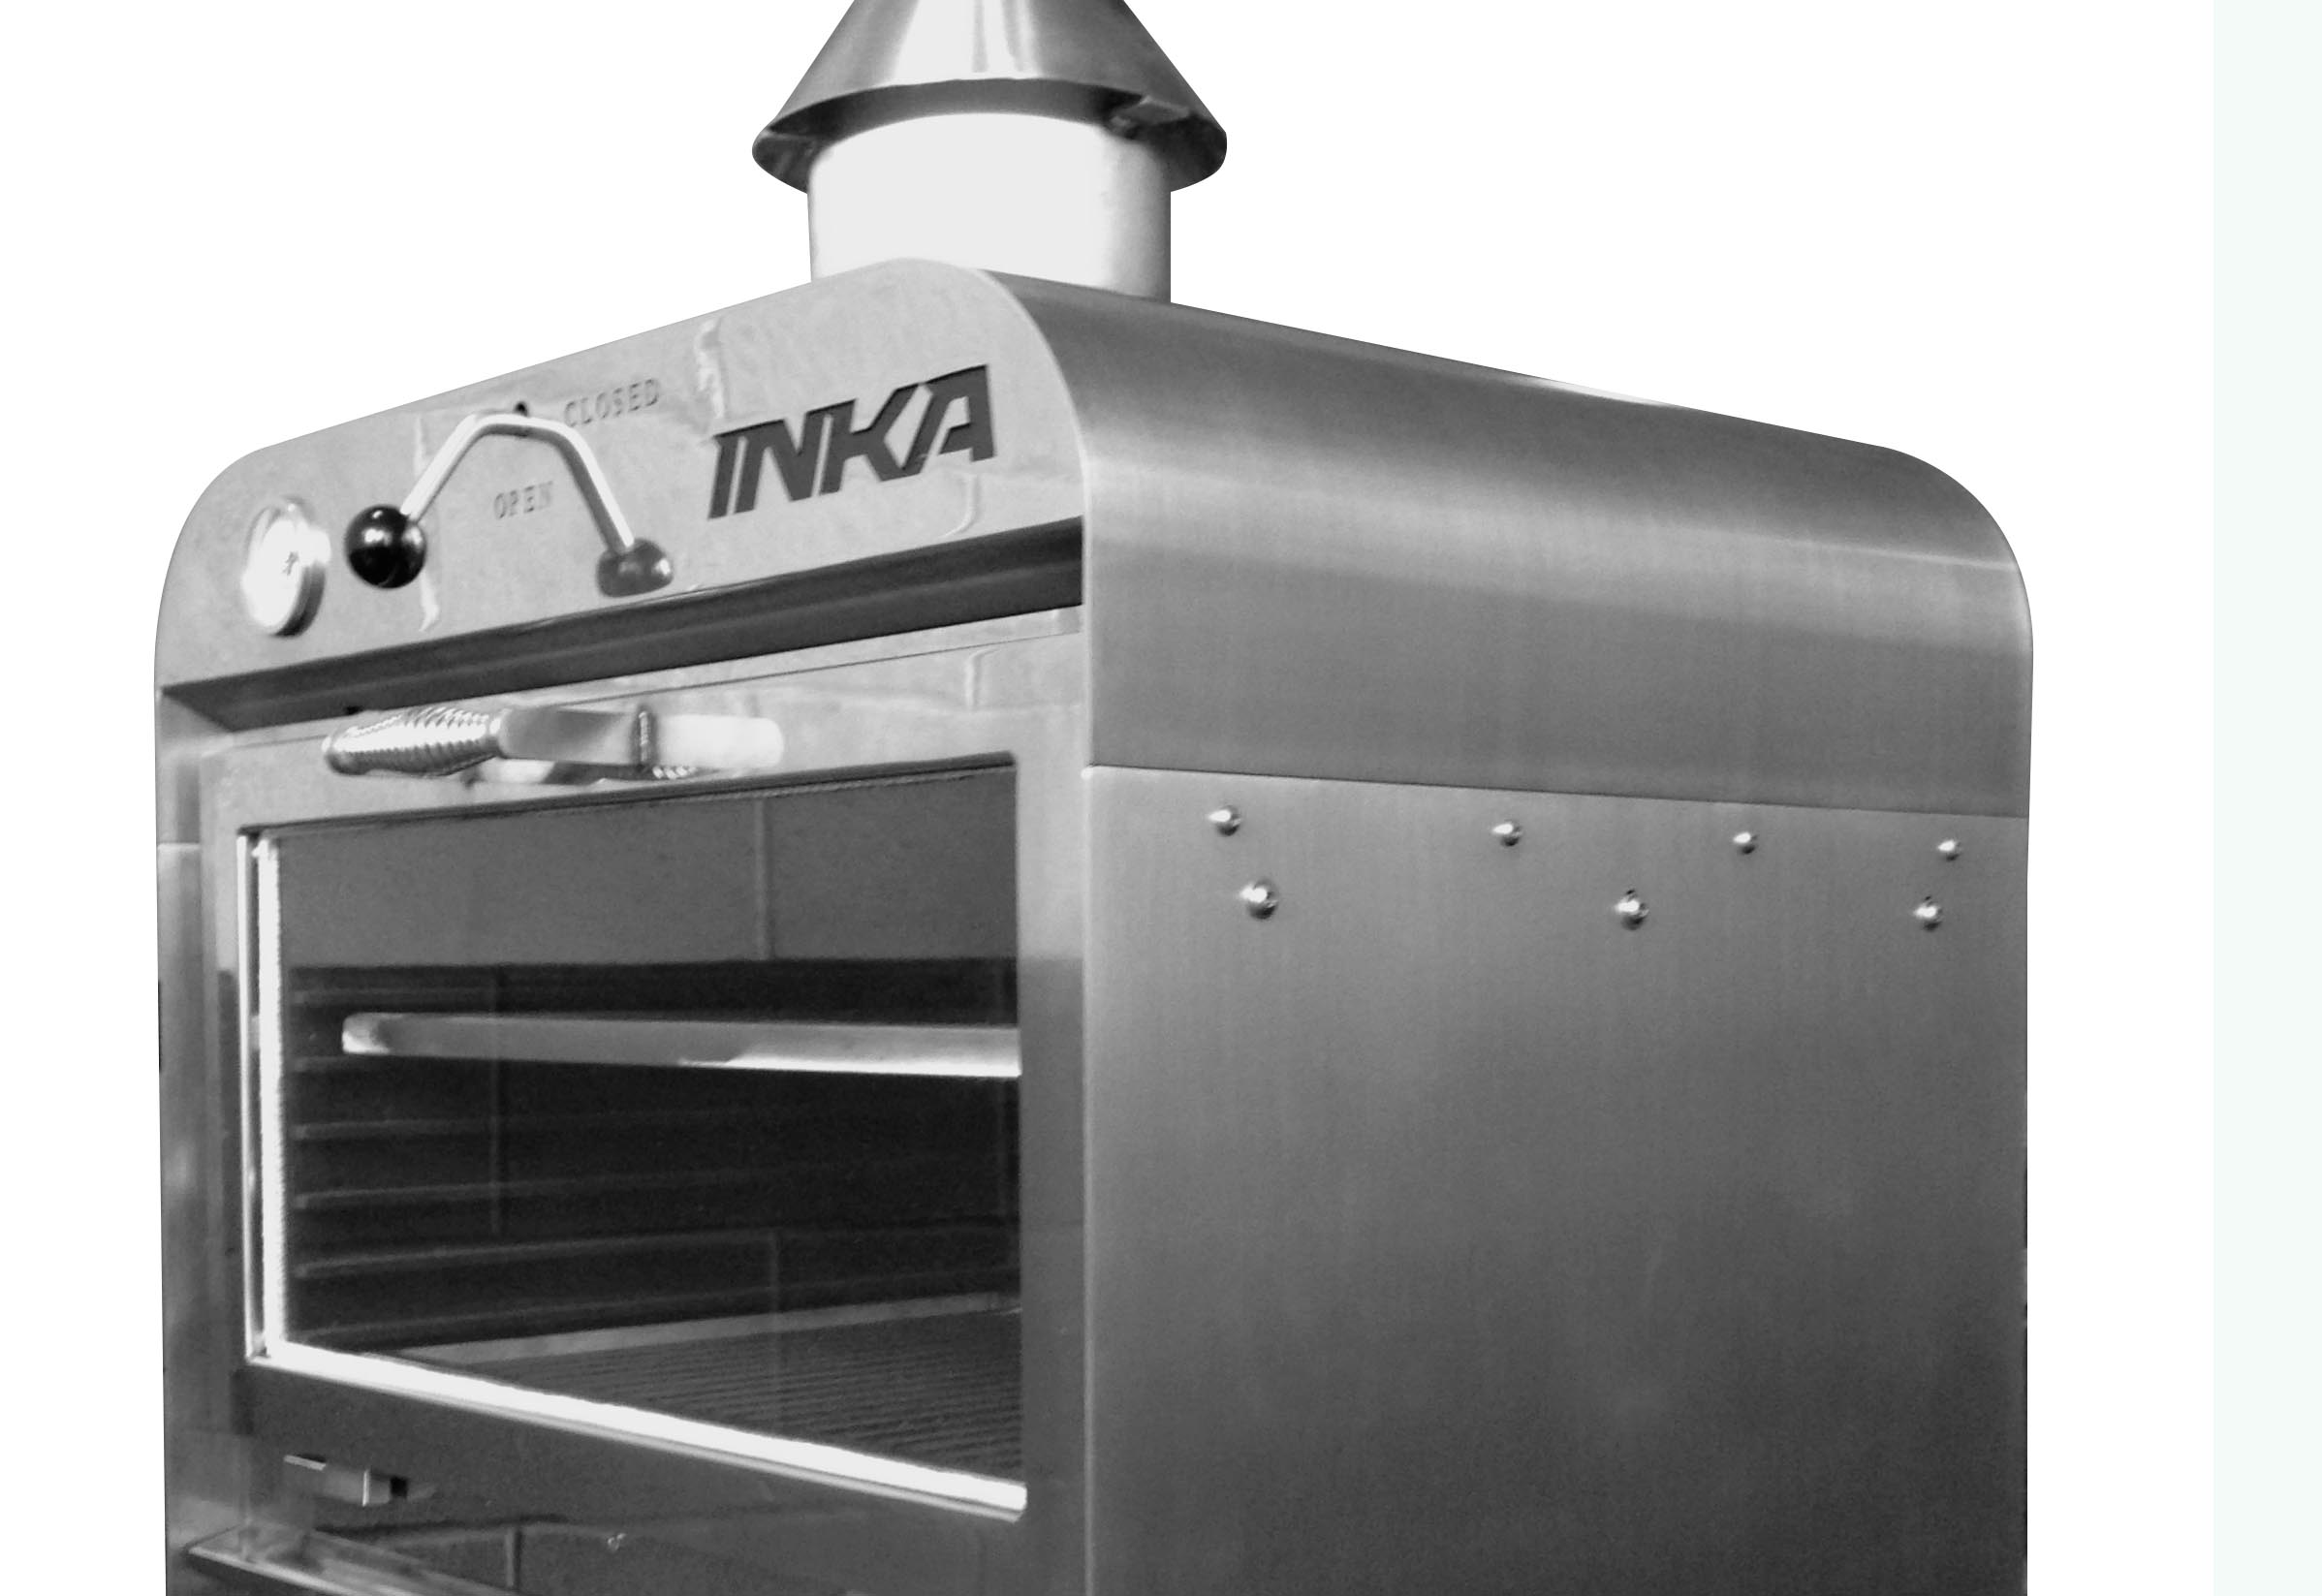 INKA-Oven-without-Stand-High.JPG